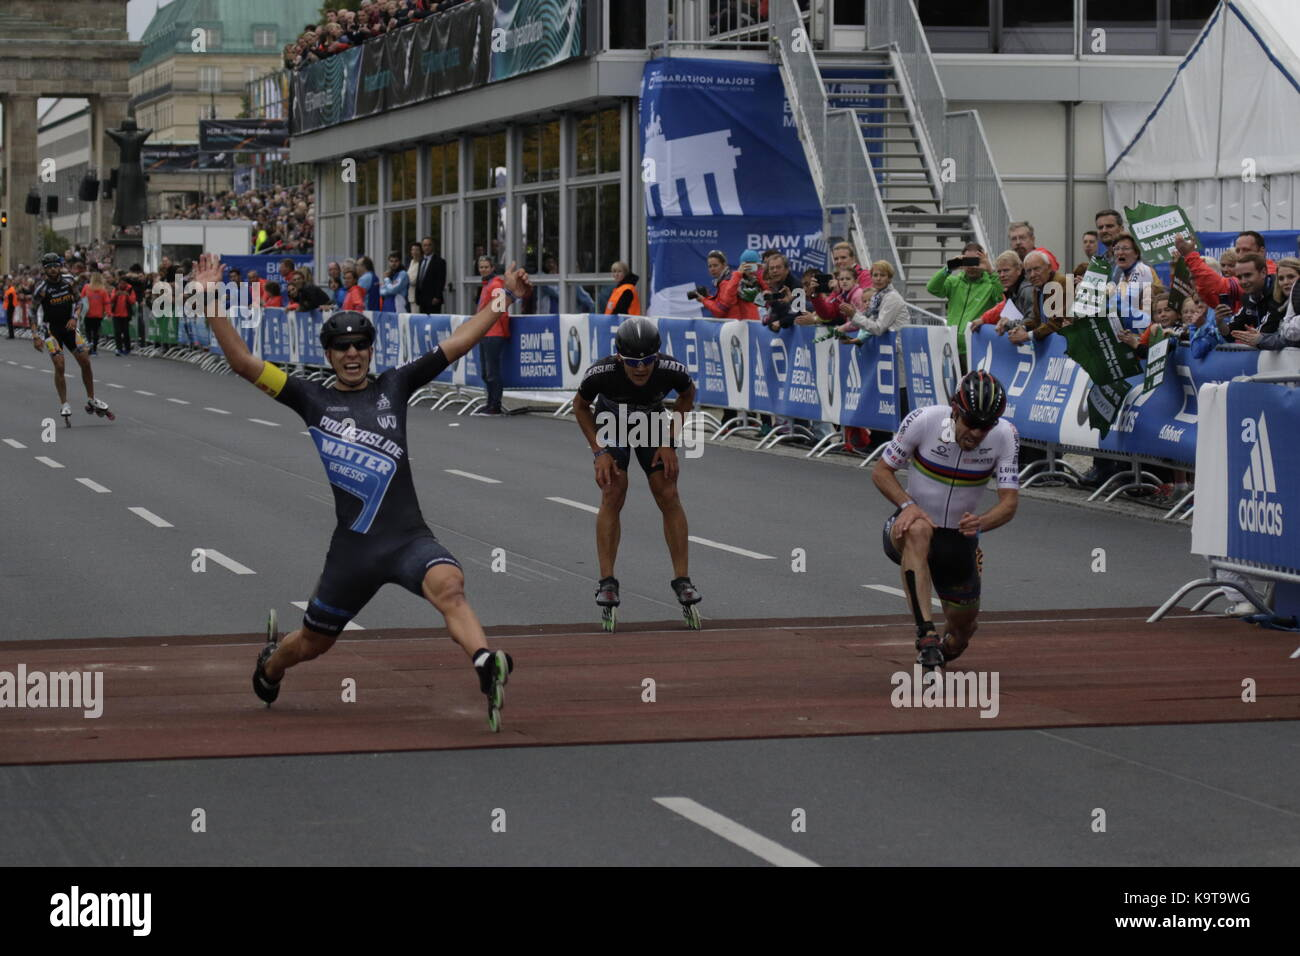 Berlin, Germany. 23rd Sep, 2017. Skaters cross the finishing line. Over 5,500 skater took part in the 2017 BMW Berlin Marathon Inline skating race, a day ahead of the Marathon race. Bart Swings from Belgium won the race in 58:42 for the 5th year in a row. Credit: Michael Debets/Pacific Press/Alamy Live News Stock Photo